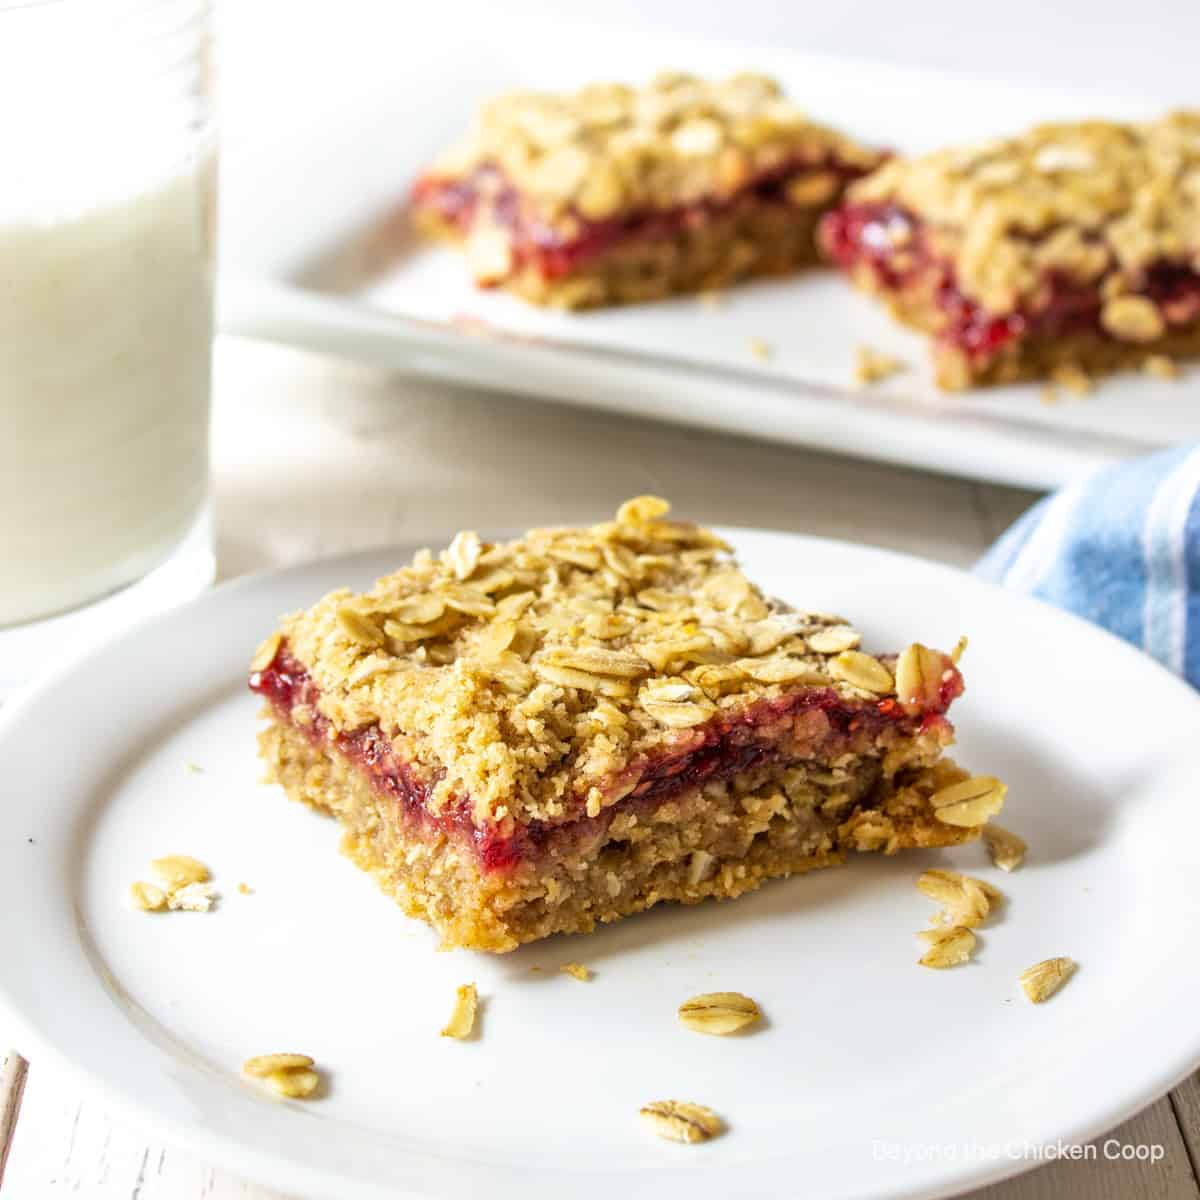 An oatmeal bar filled with raspberry jam on a white plate.